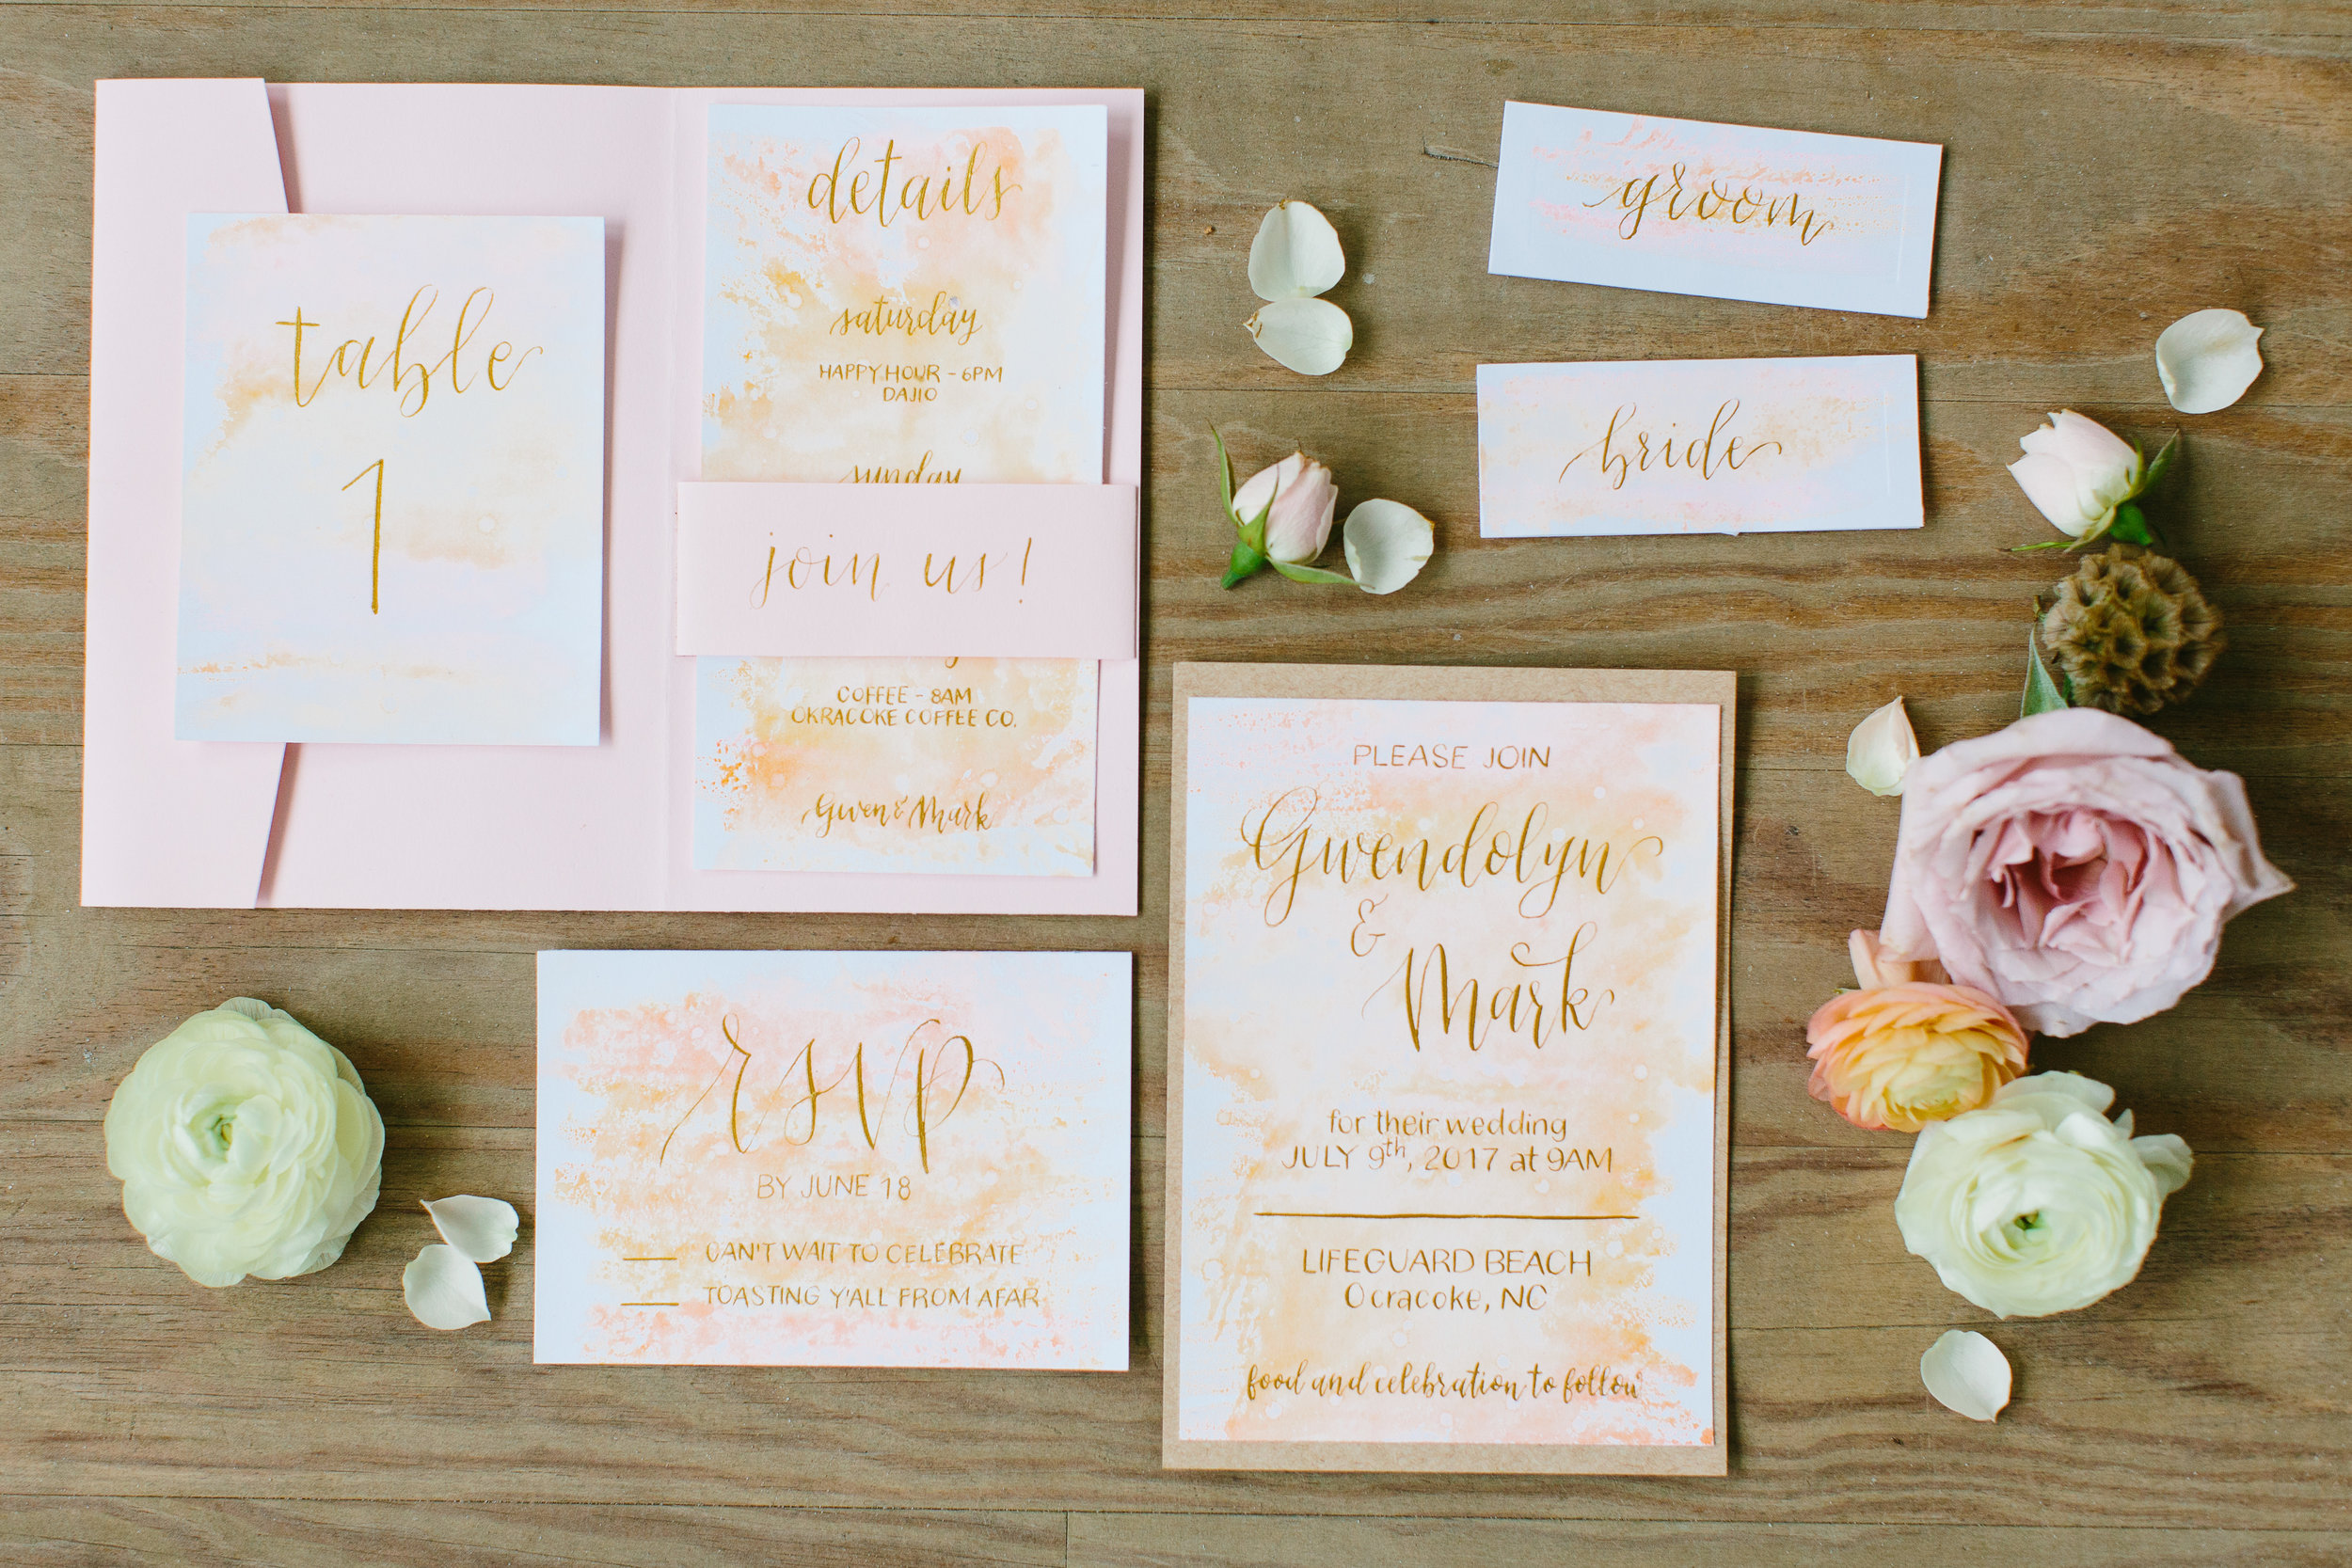 Wedding Calligraphy A Guide To Beautiful Hand Lettering The Ultimate Guide To Wedding Calligraphy Joy Unscripted